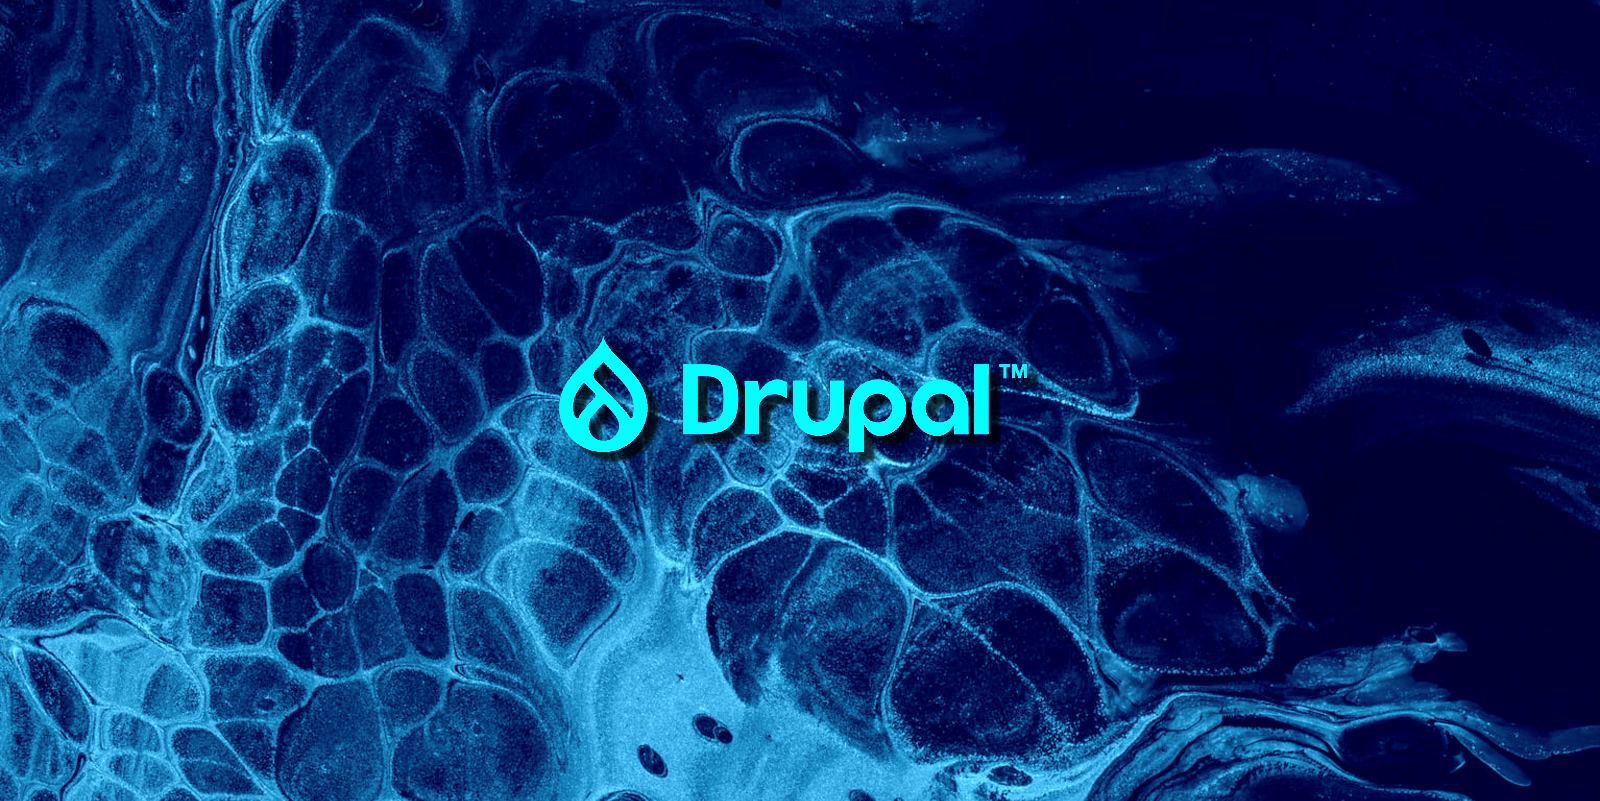 Drupal Releases Fix For Critical Vulnerability With Known Exploits